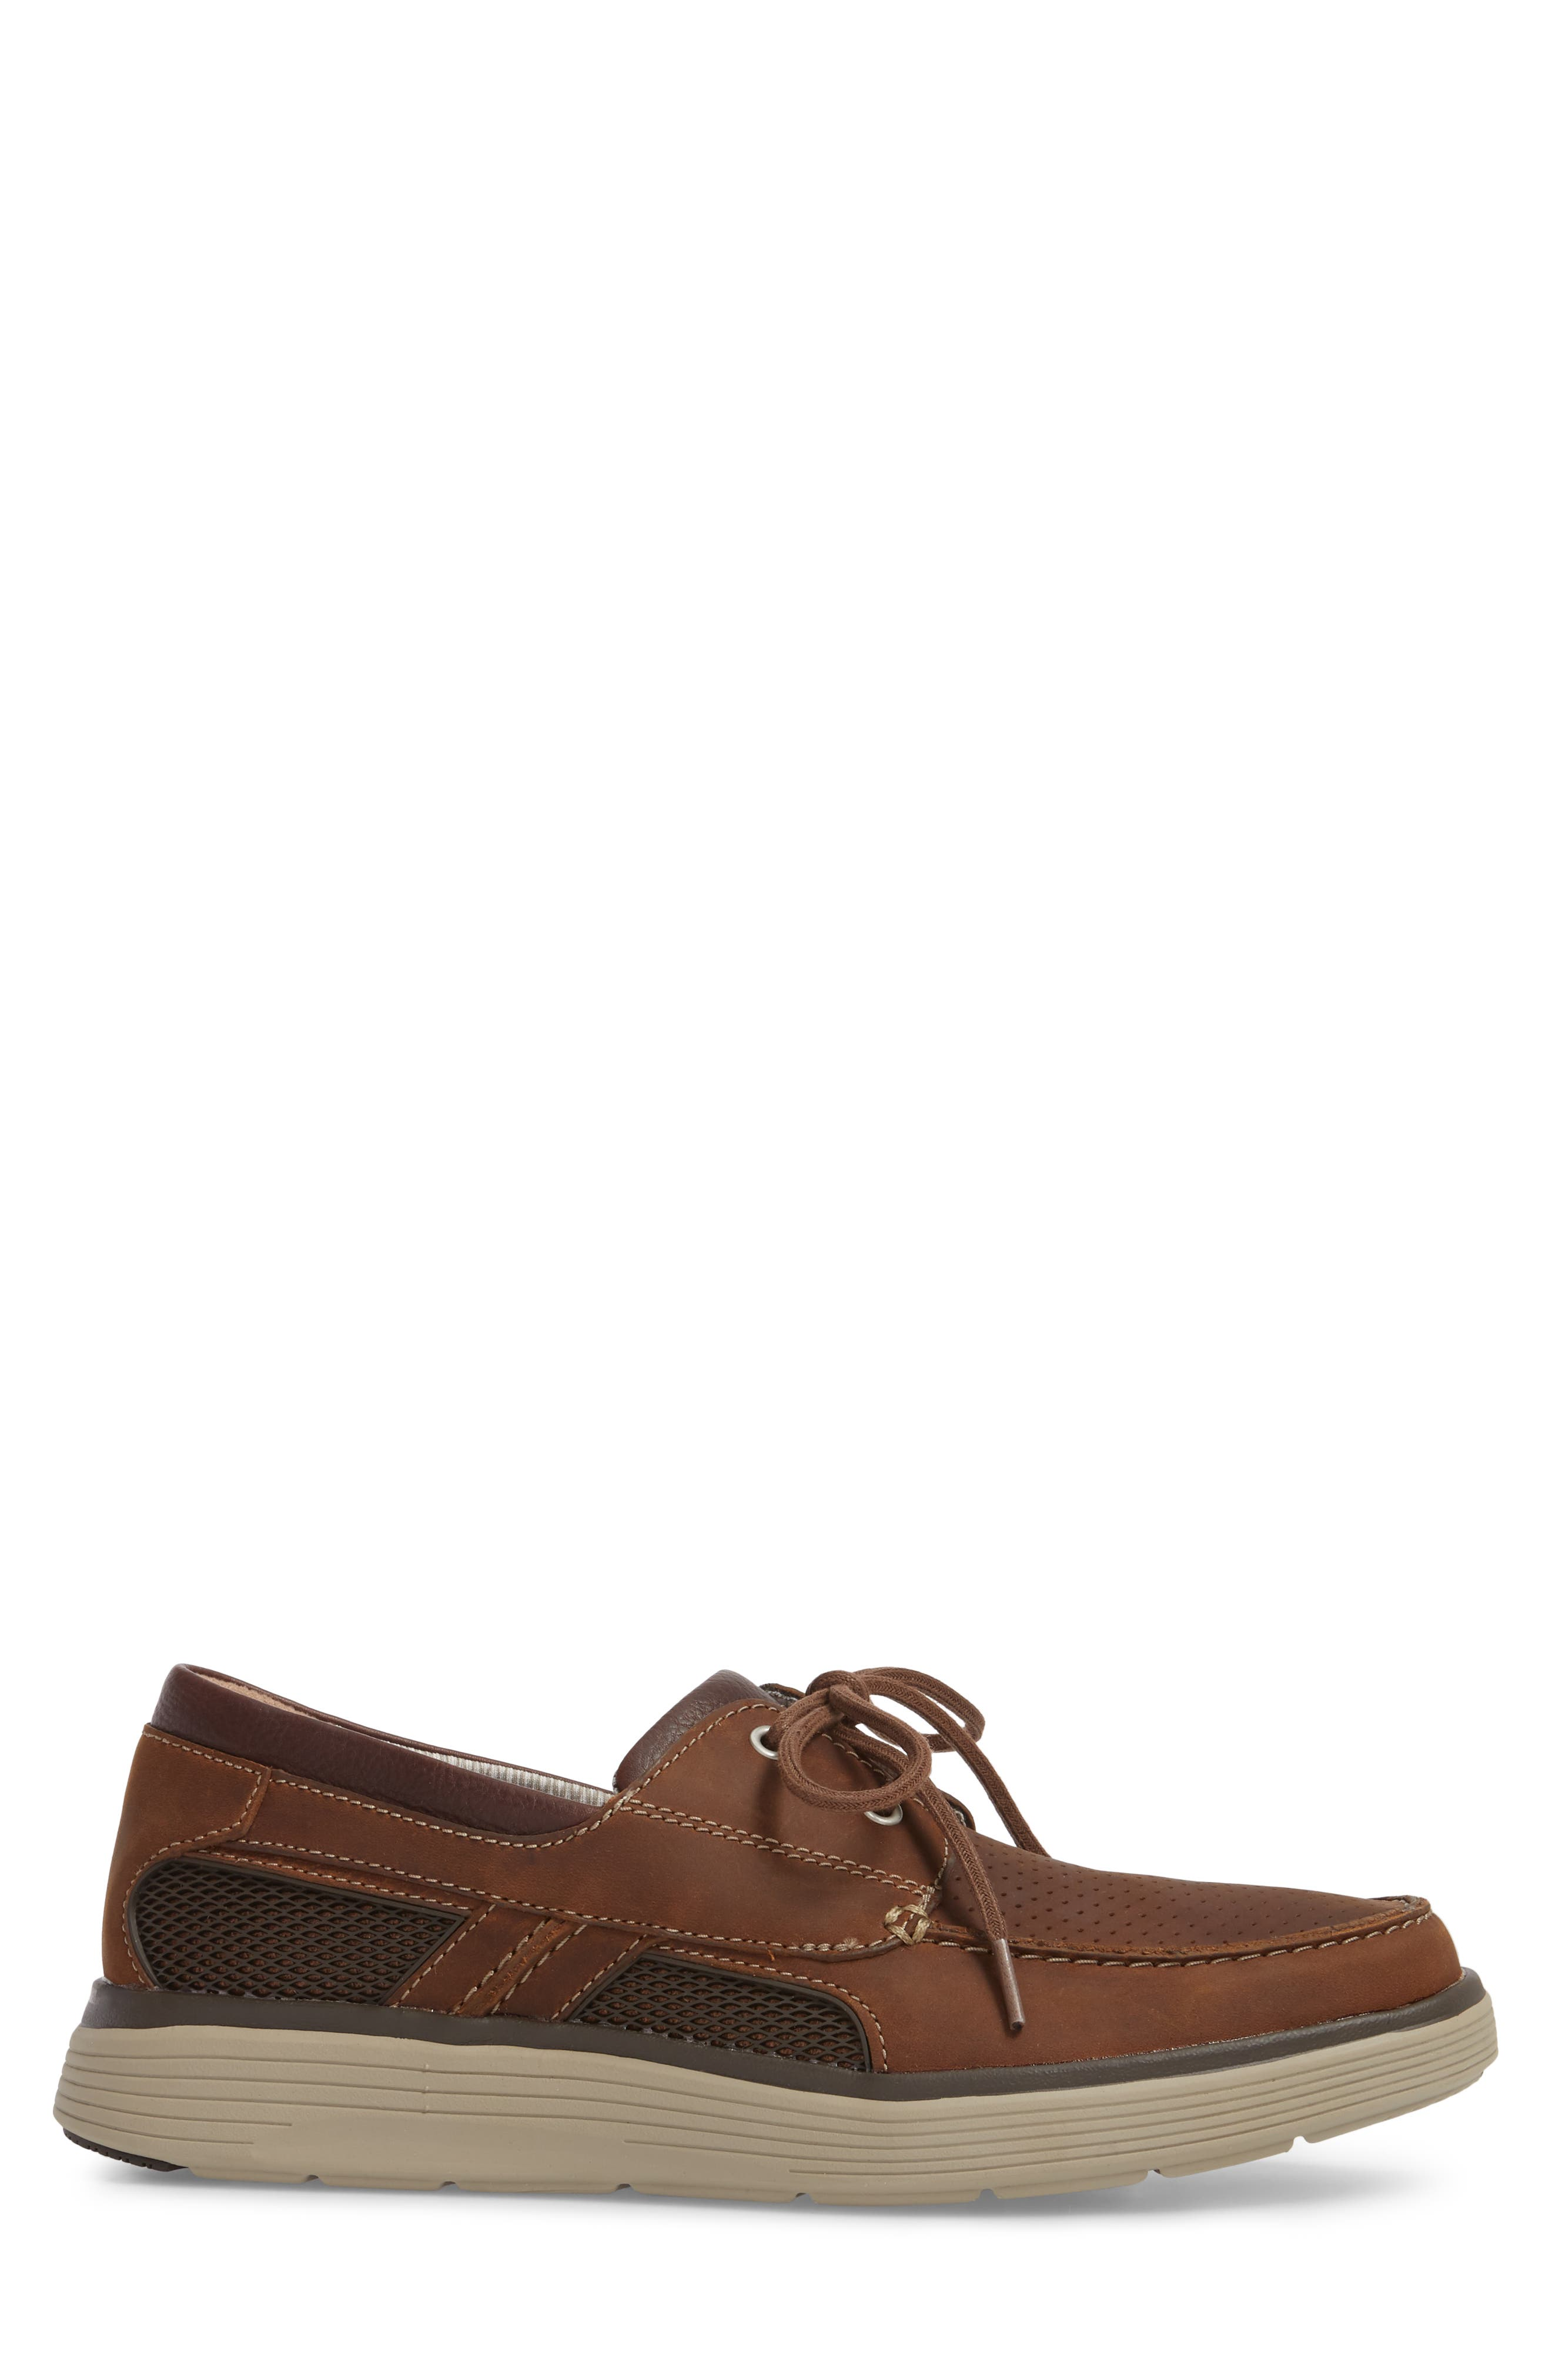 Clarks<sup>®</sup> Unabobe Step Boat Shoe,                             Alternate thumbnail 3, color,                             DARK TAN LEATHER